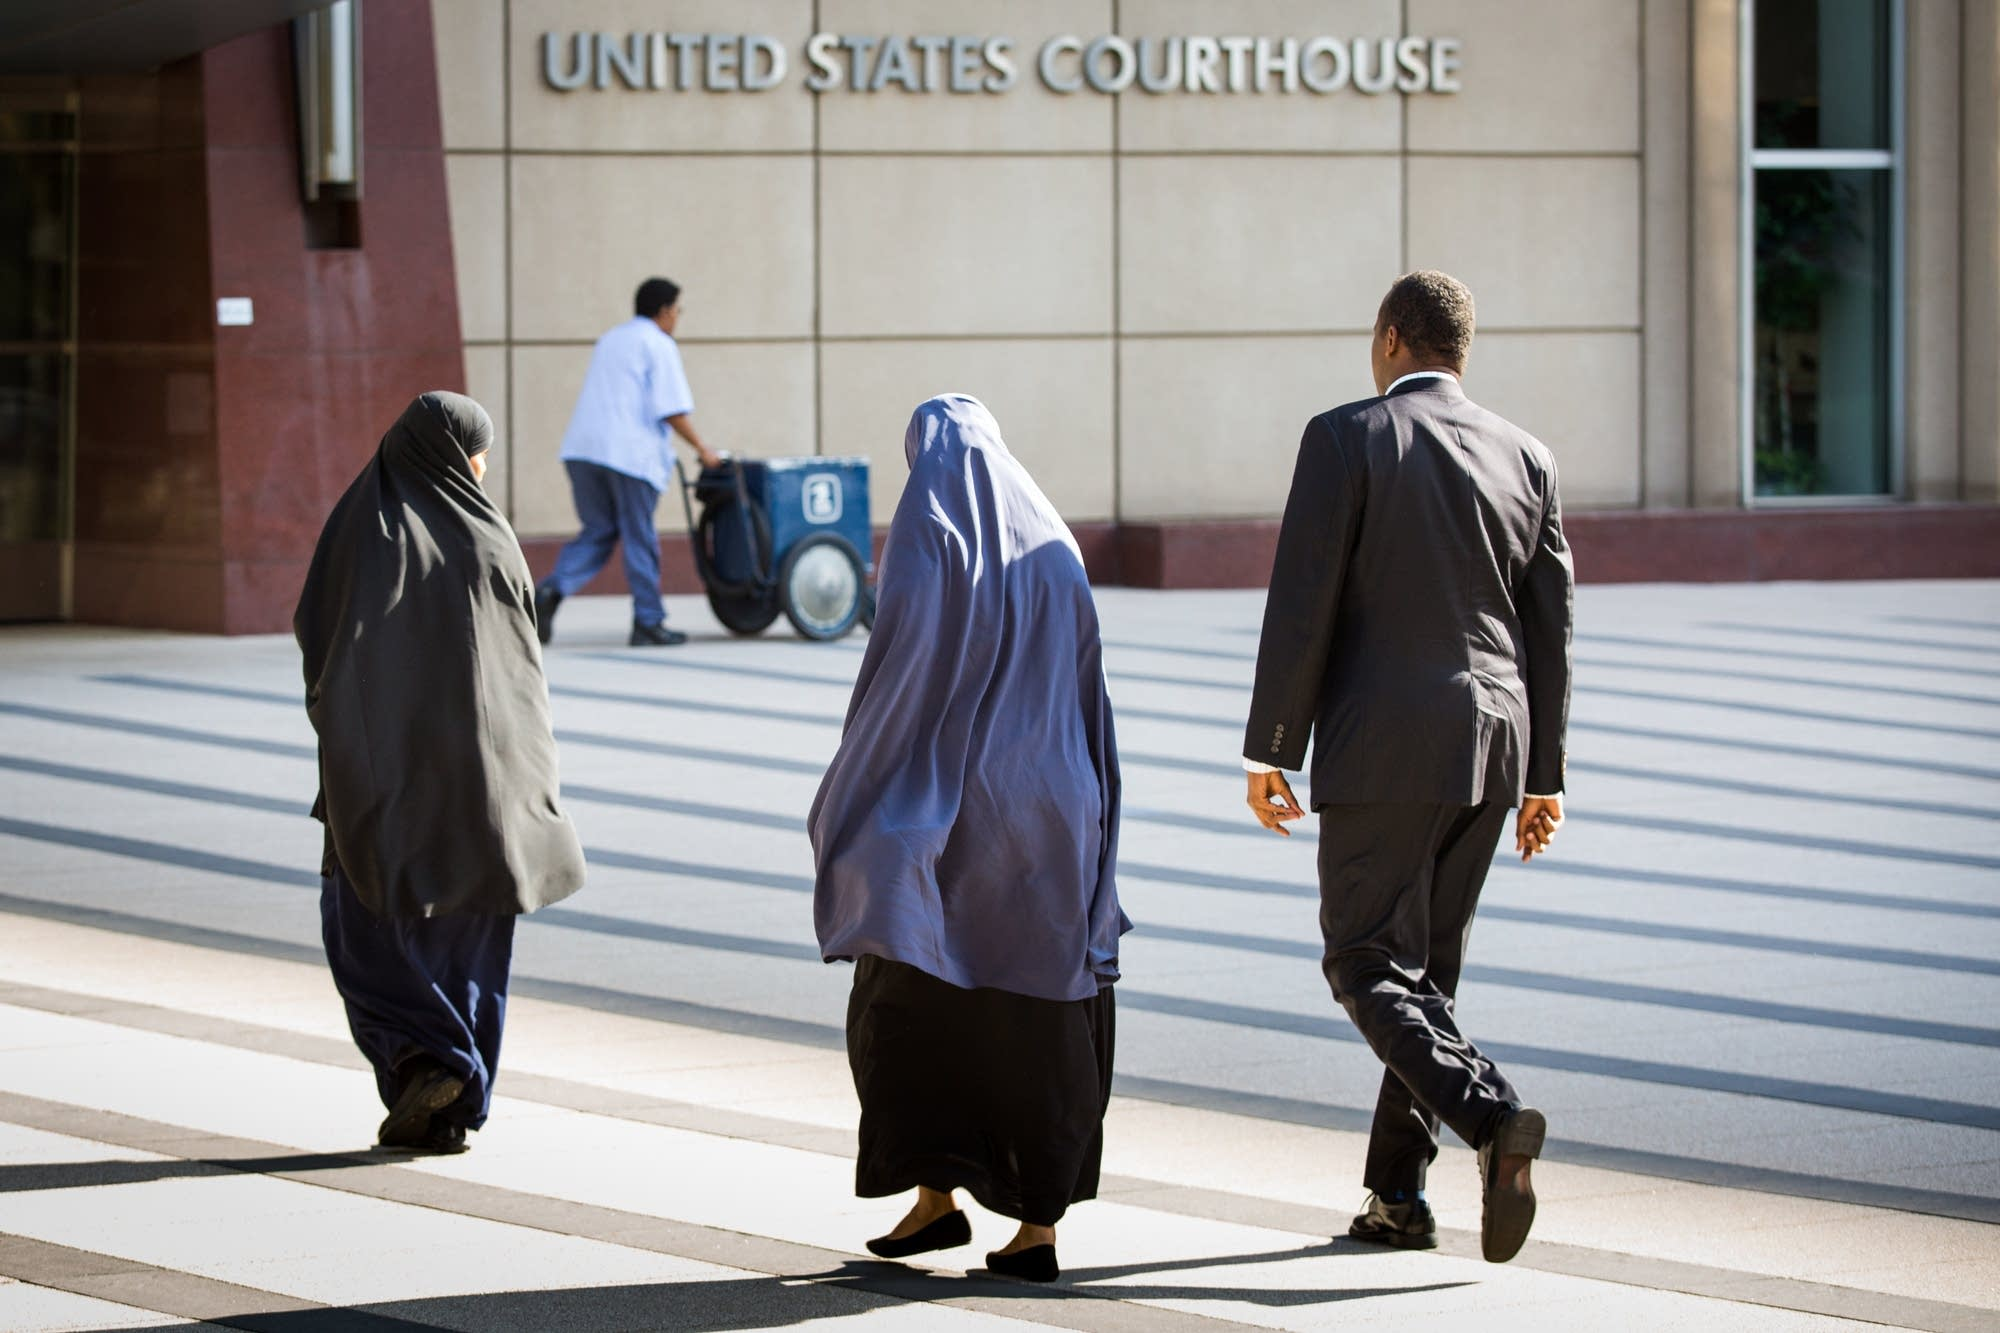 Three people enter the Federal Courthouse.